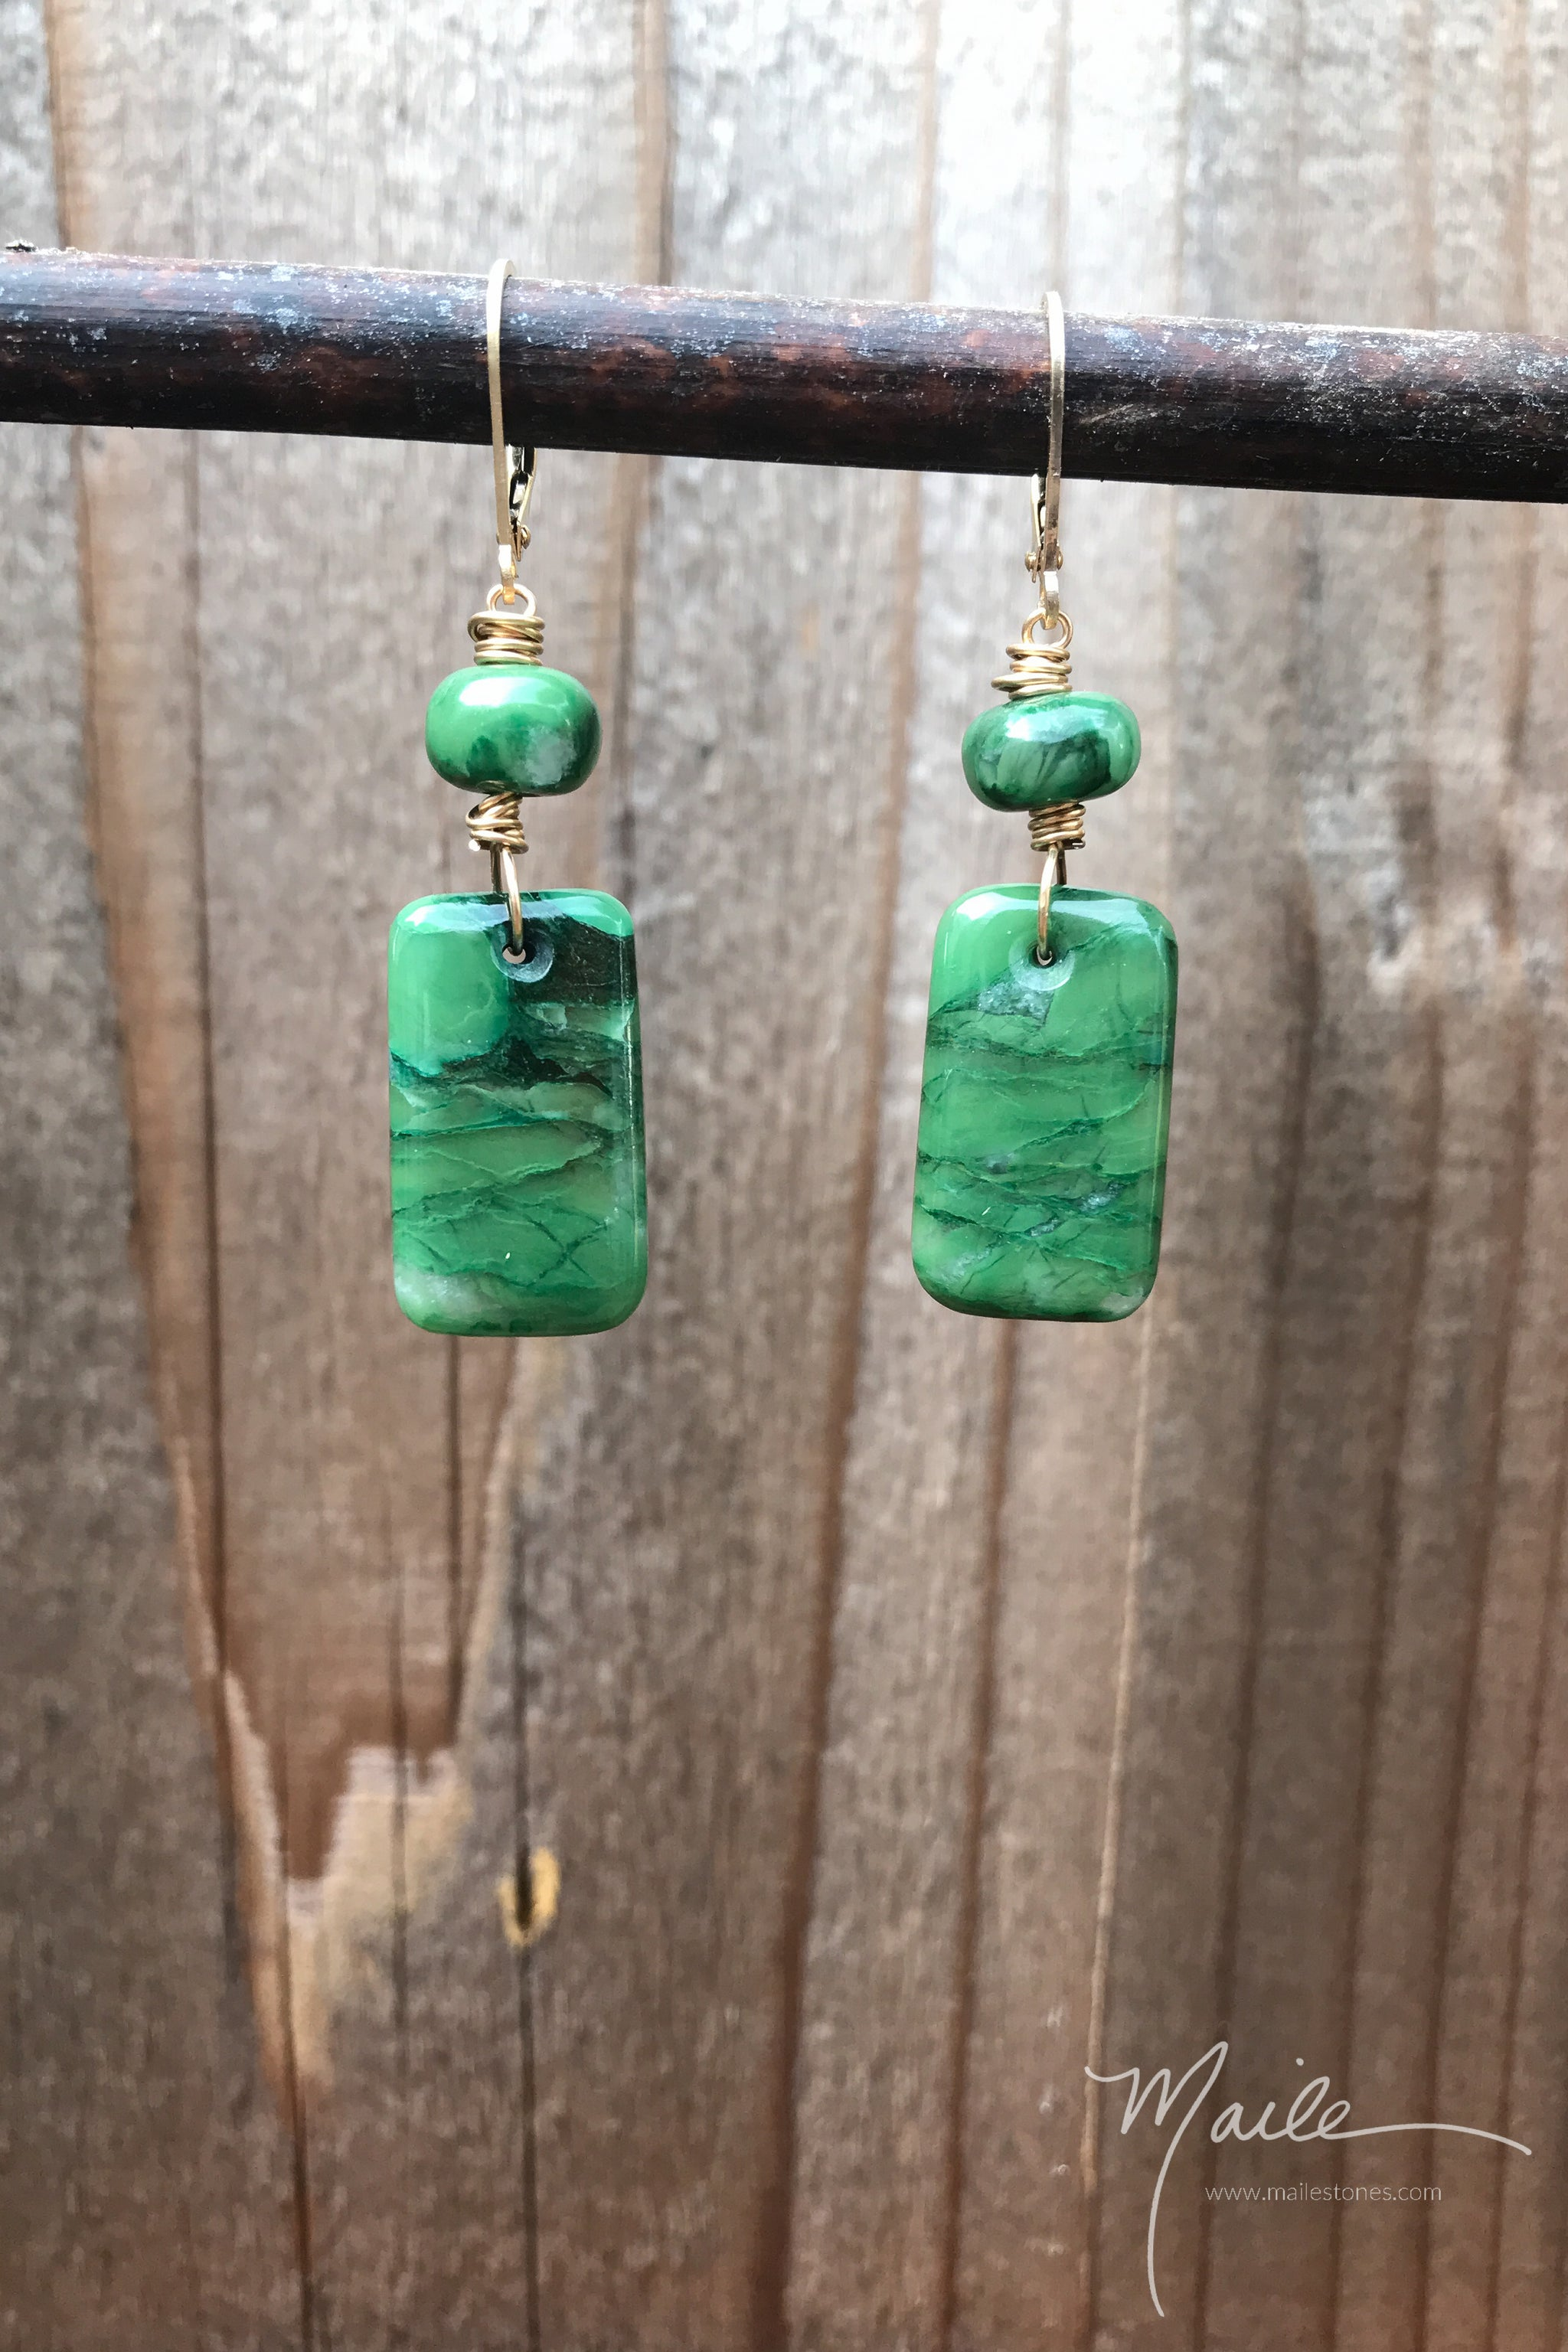 Buddstone Earrings